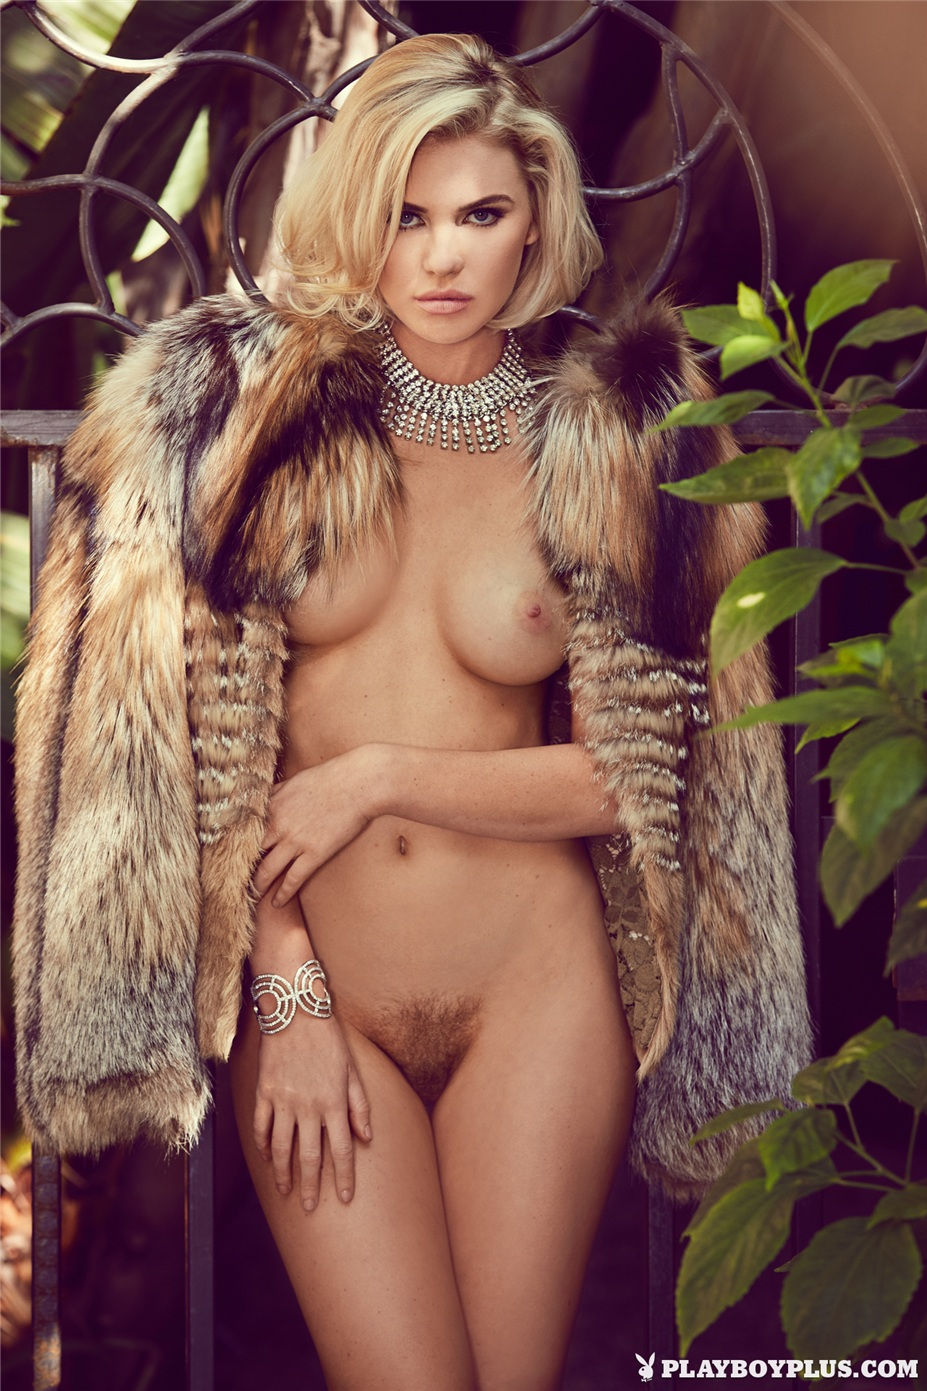 Девушка месяца Кейсли Коллинс / Kayslee Collins - Playboy USA Miss February 2015 / Venus in Furs